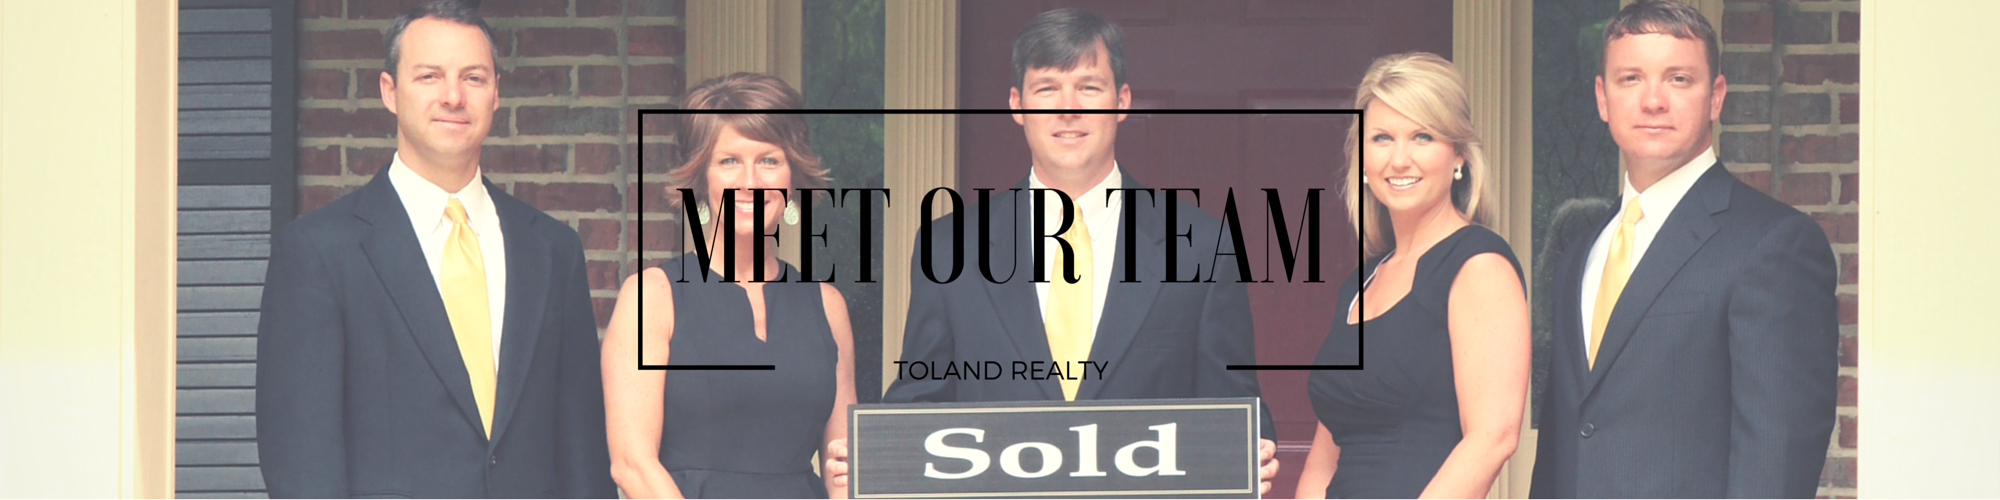 Toland Realty - Agent Page Banner 2